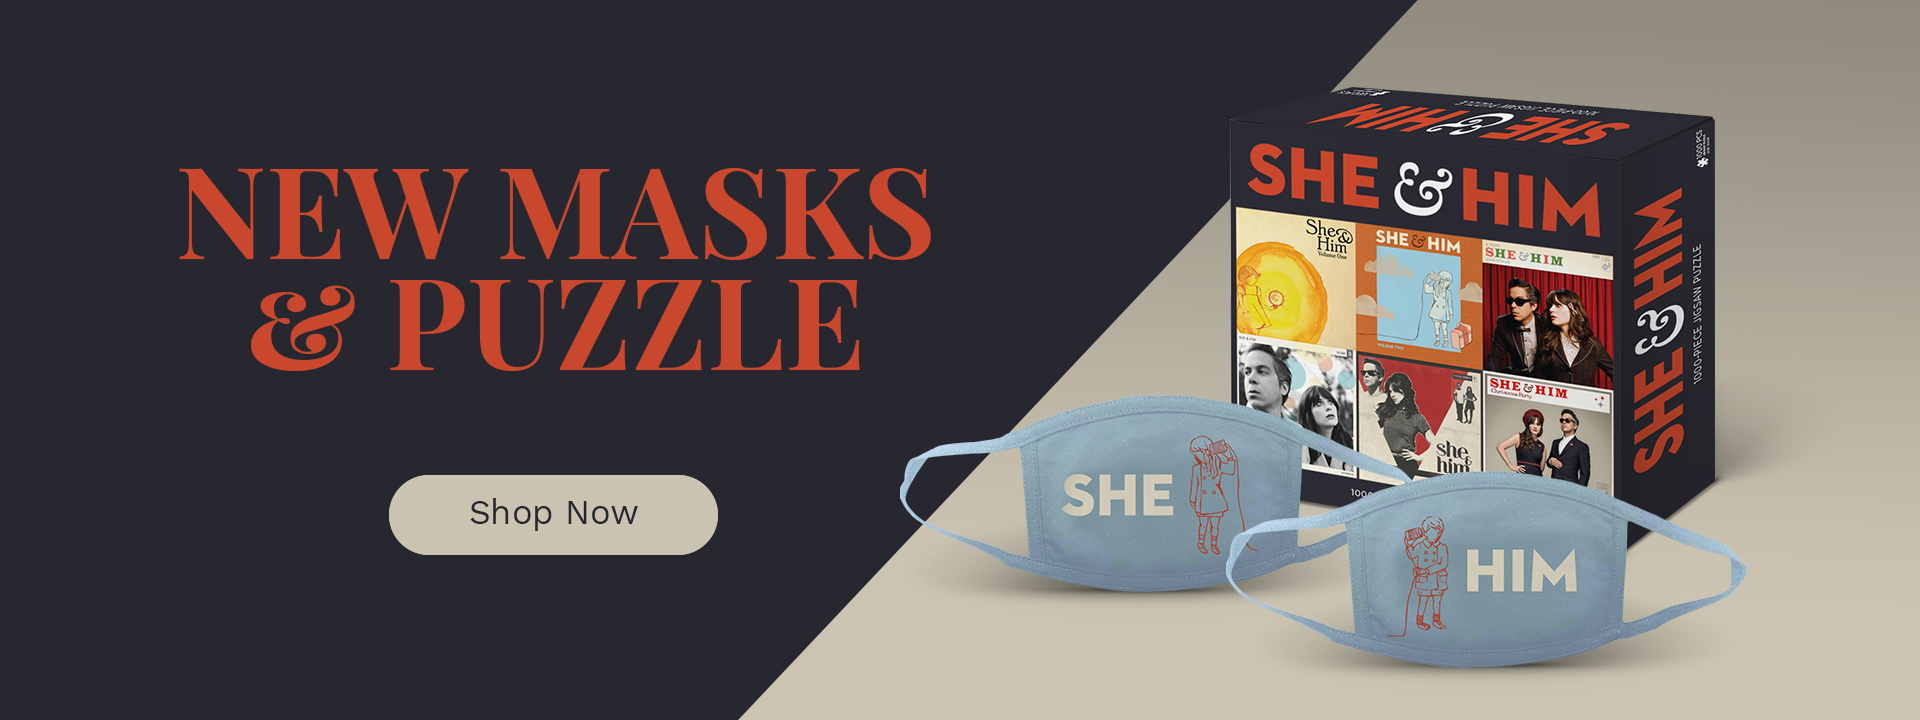 New masks and puzzle | Shop now